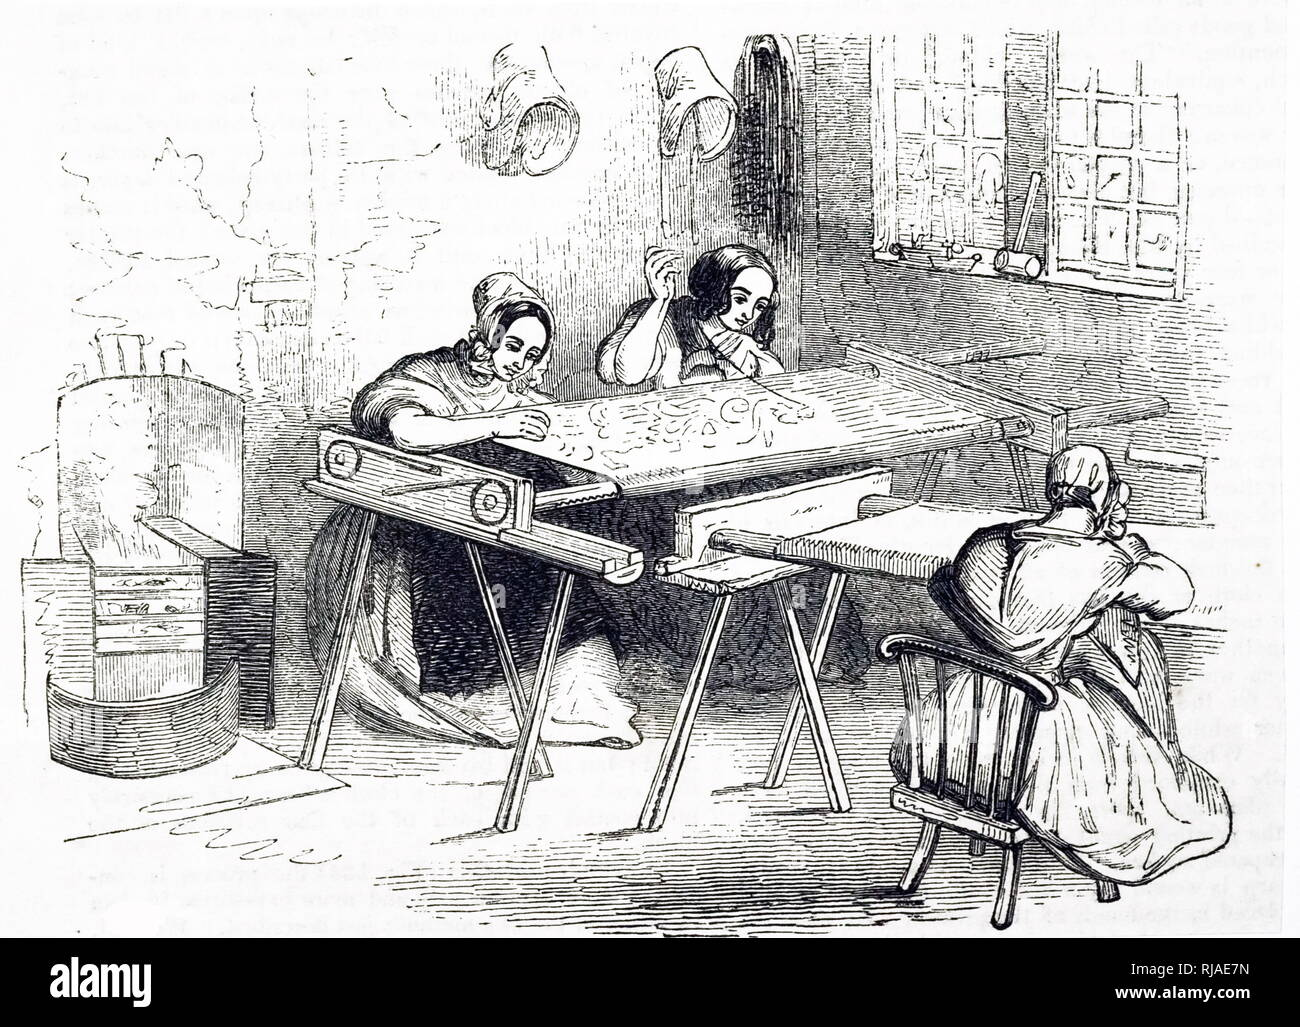 Illustration showing a Victorian, English, home worker with a sewing or embroidery bobbin working long hours for low pay.1843 - Stock Image